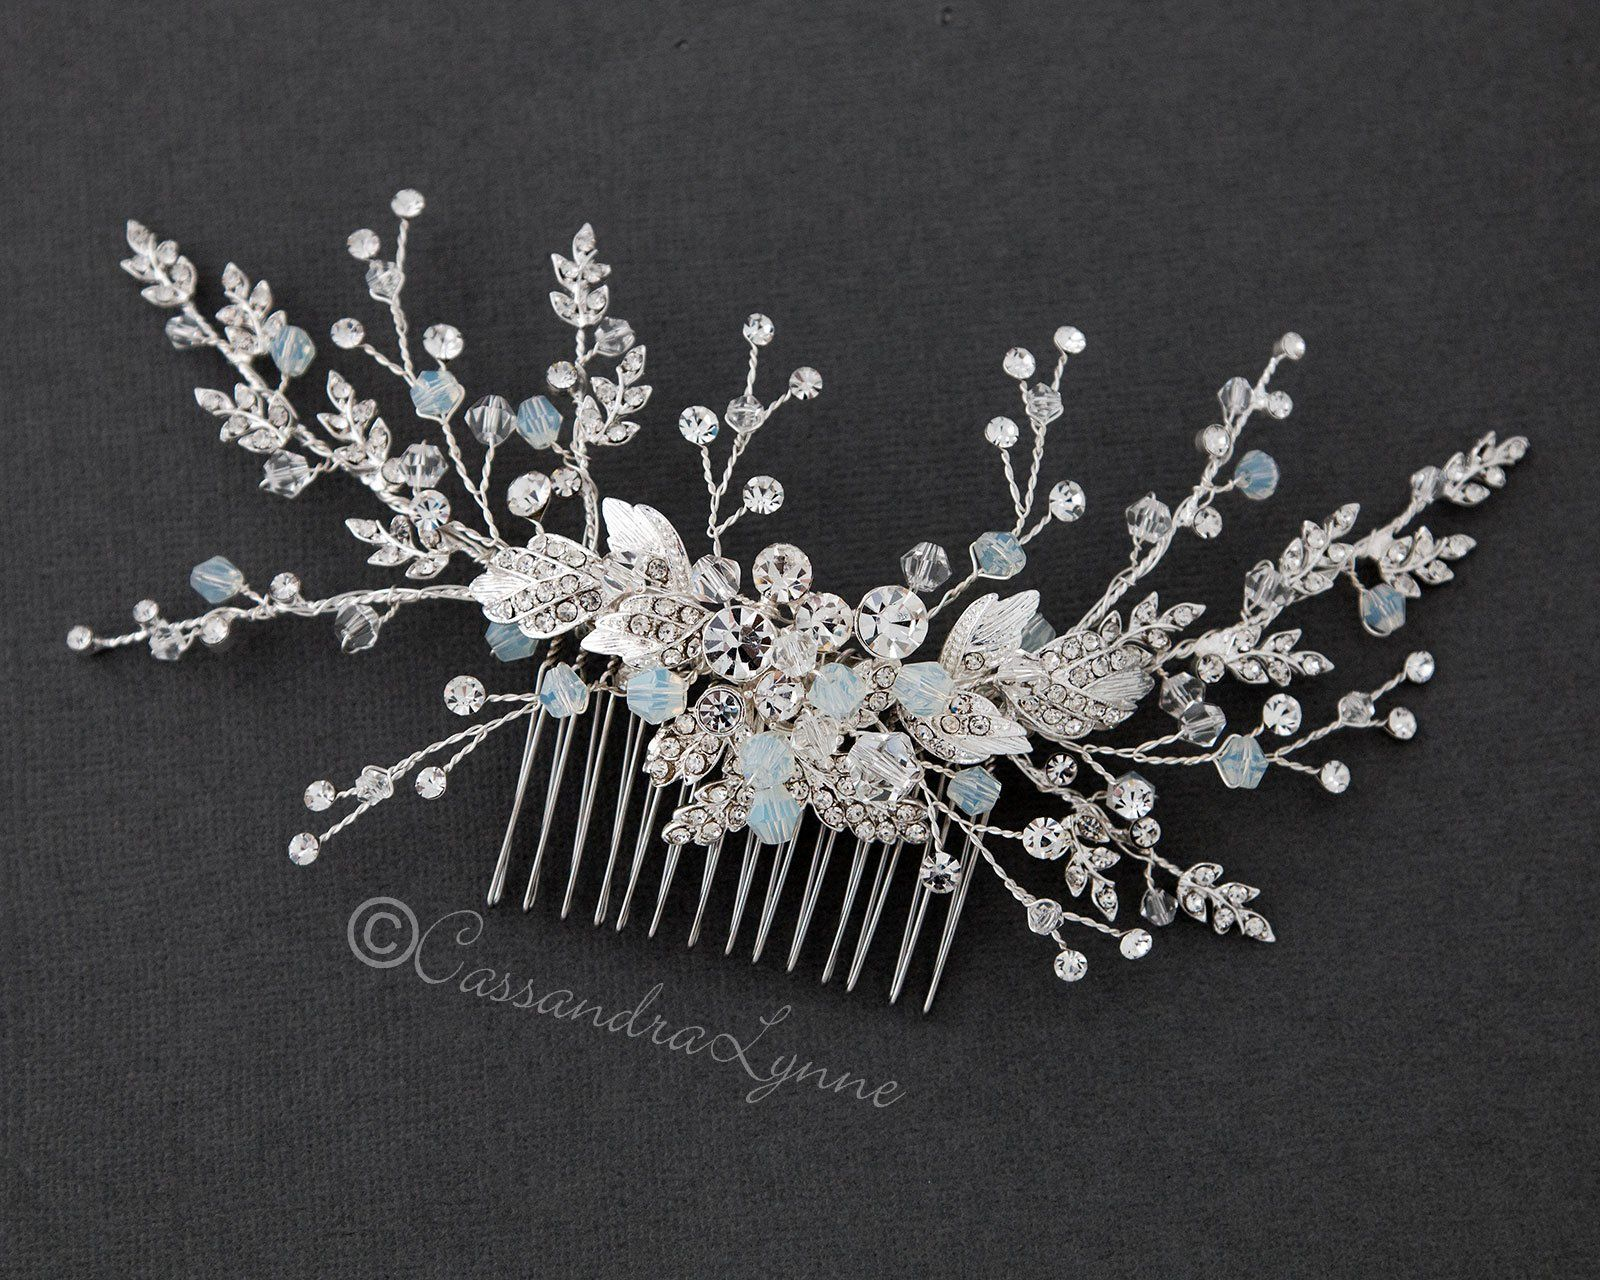 f71136db3 White opal and clear crystal beads adorn this dainty bridal hair comb.  Sprays of tiny jeweled leaves, beads and round cut stones reach out from  larger ...